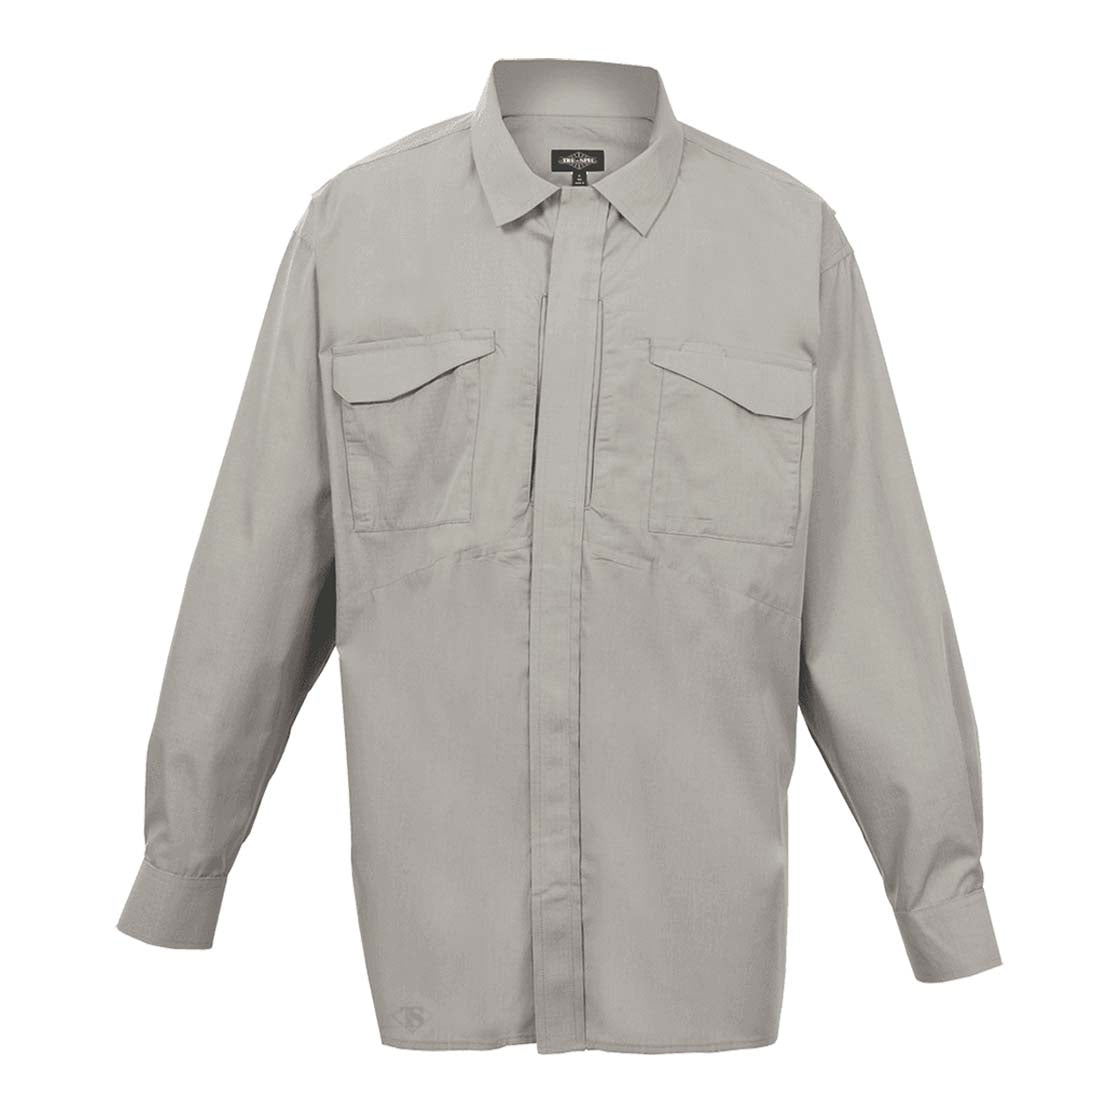 Tru-Spec 1057 Khaki Men's Ultralight Long Sleeve Uniform Shirt